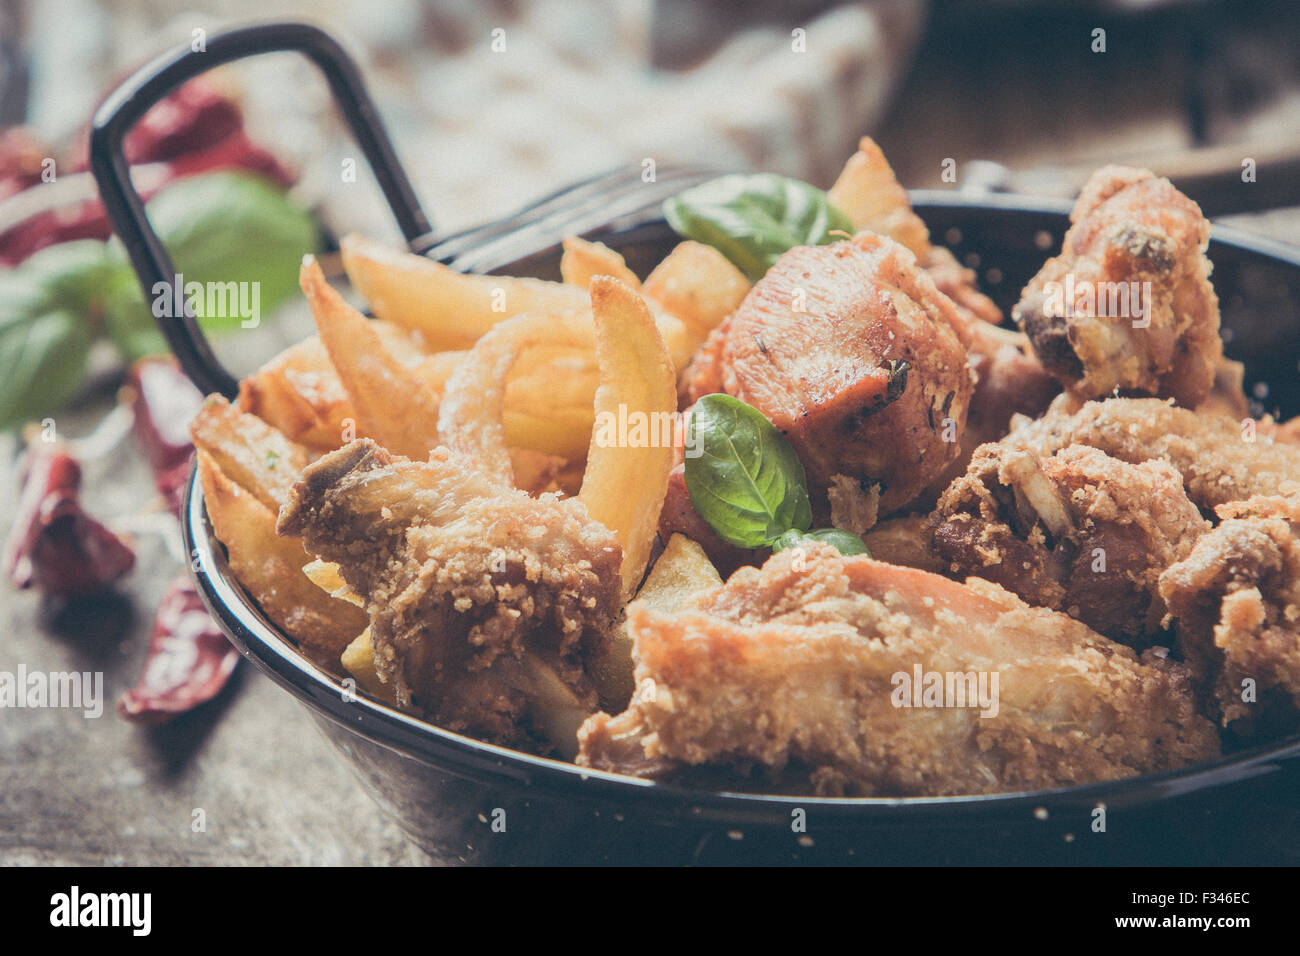 deep fried chicken with fries - Stock Image